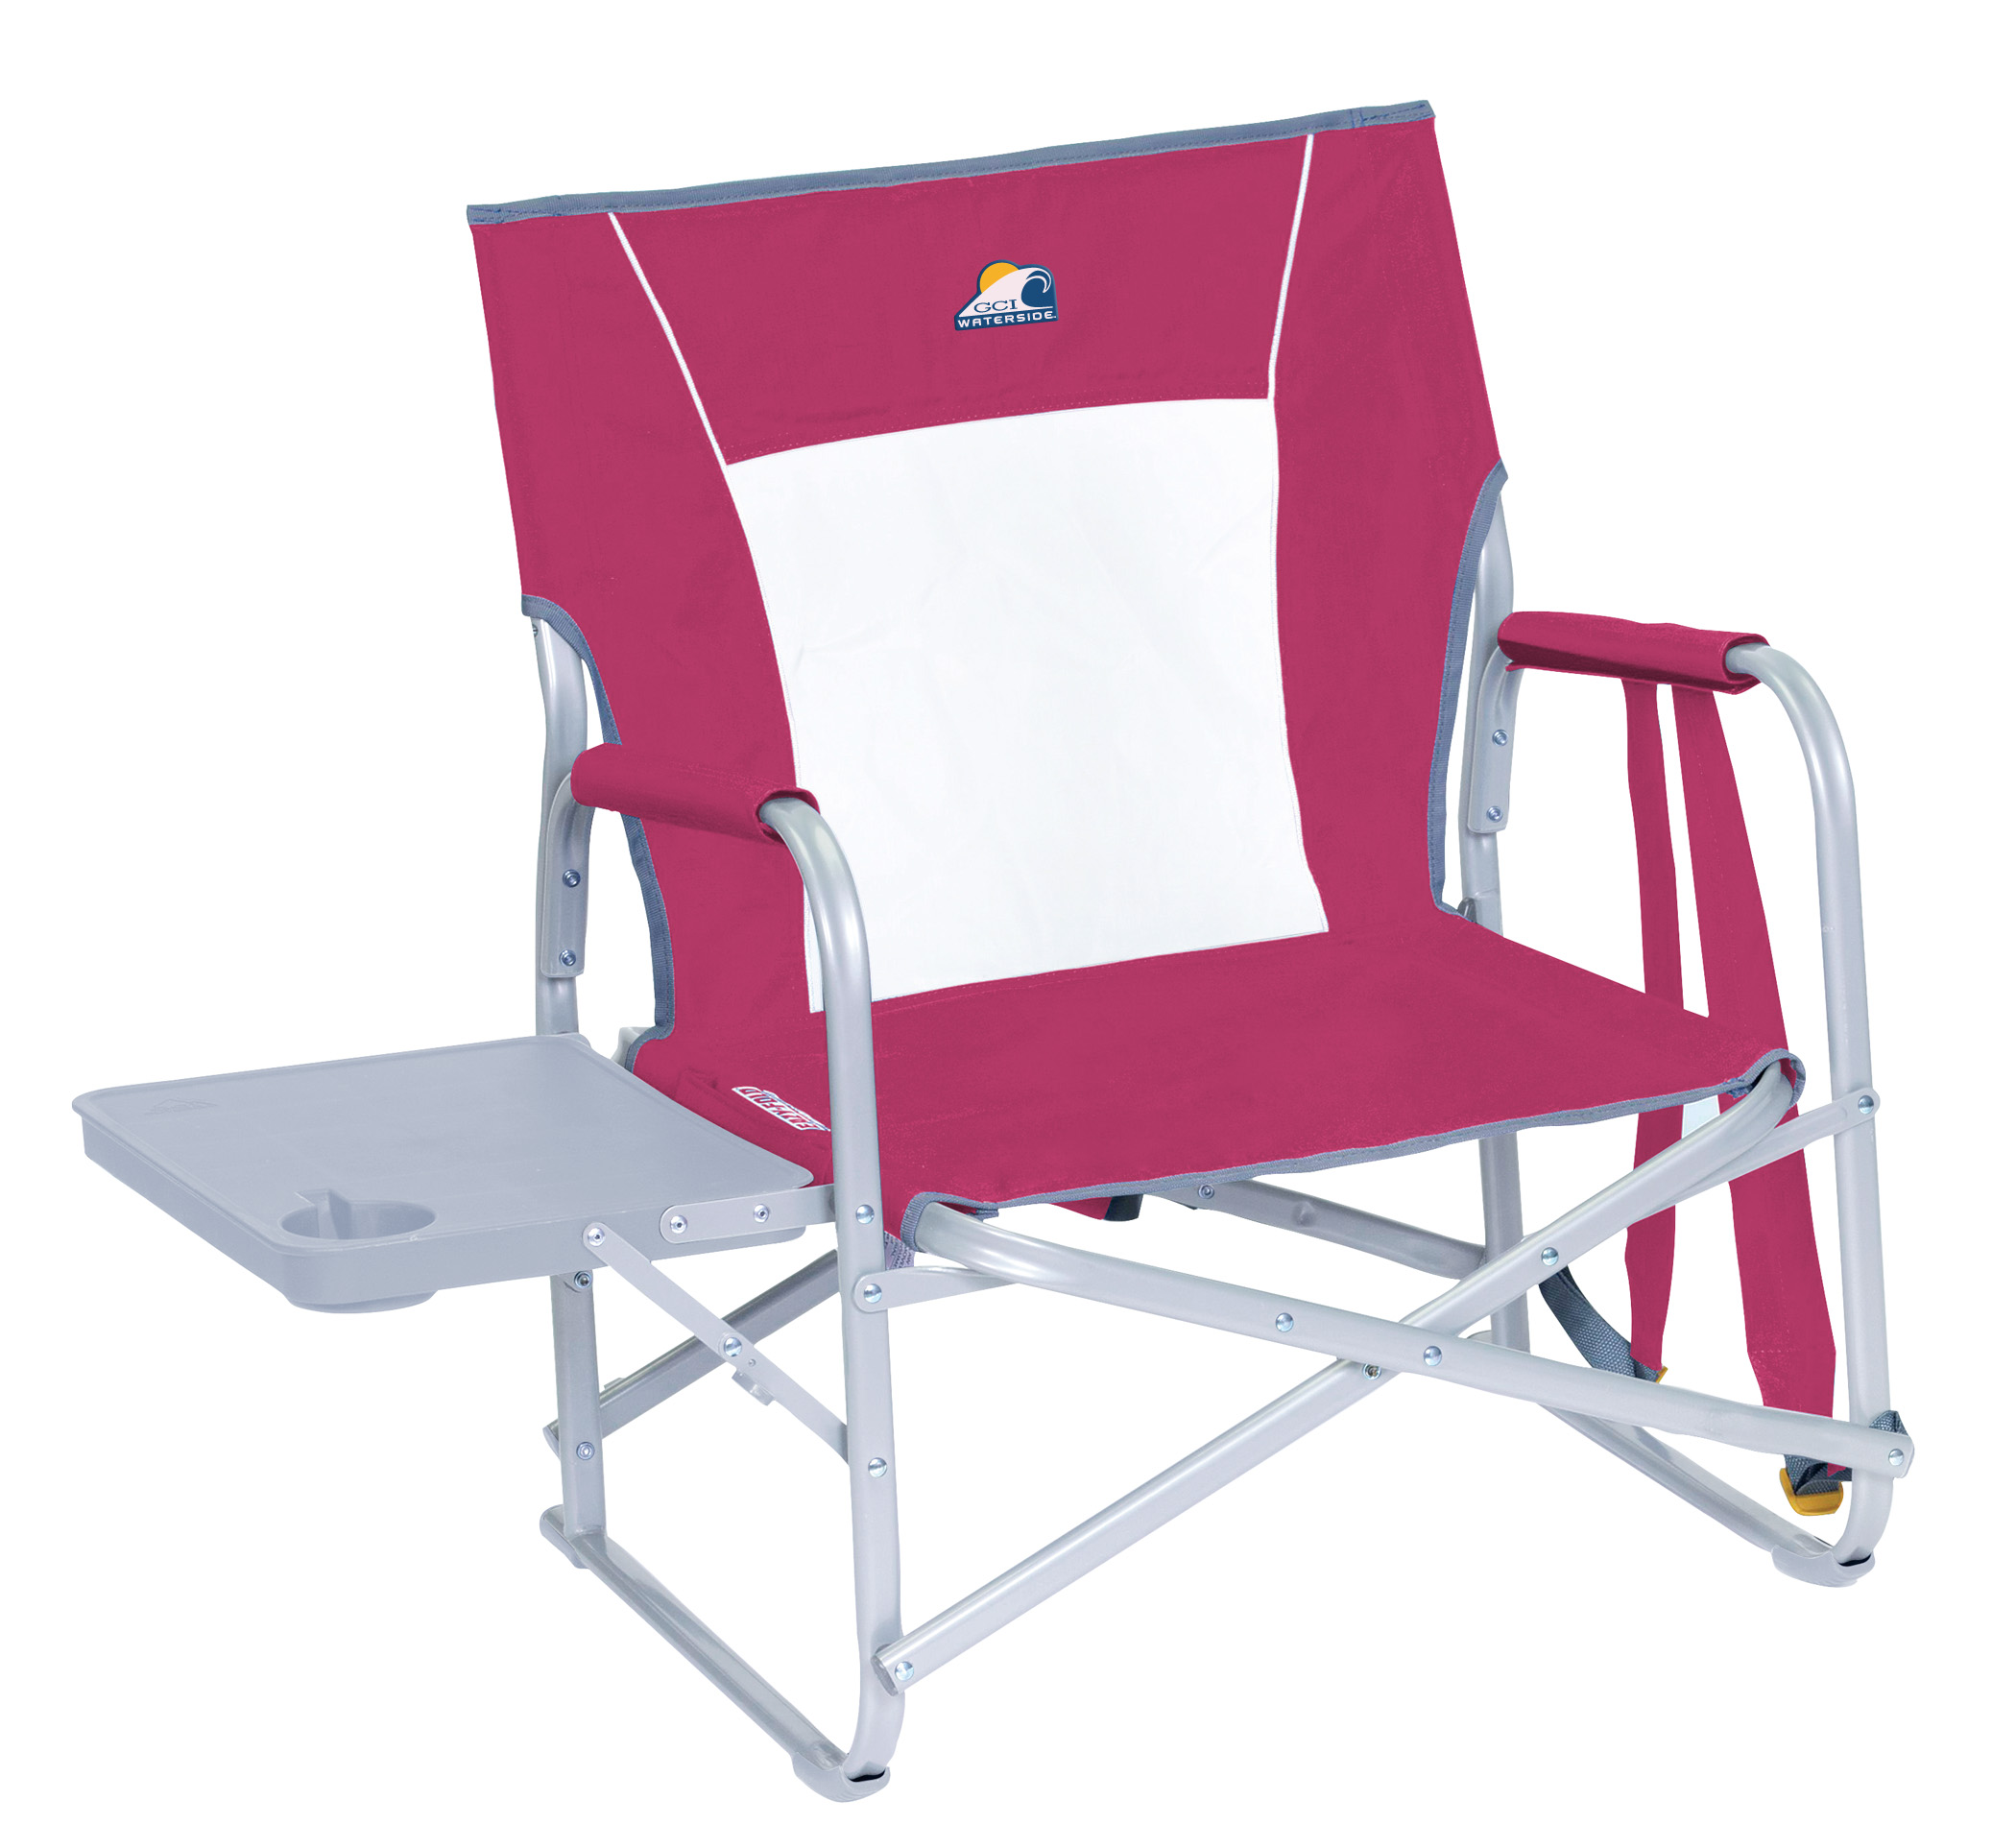 custom beach chairs padded folding for sale imprinted slim fold chair designer